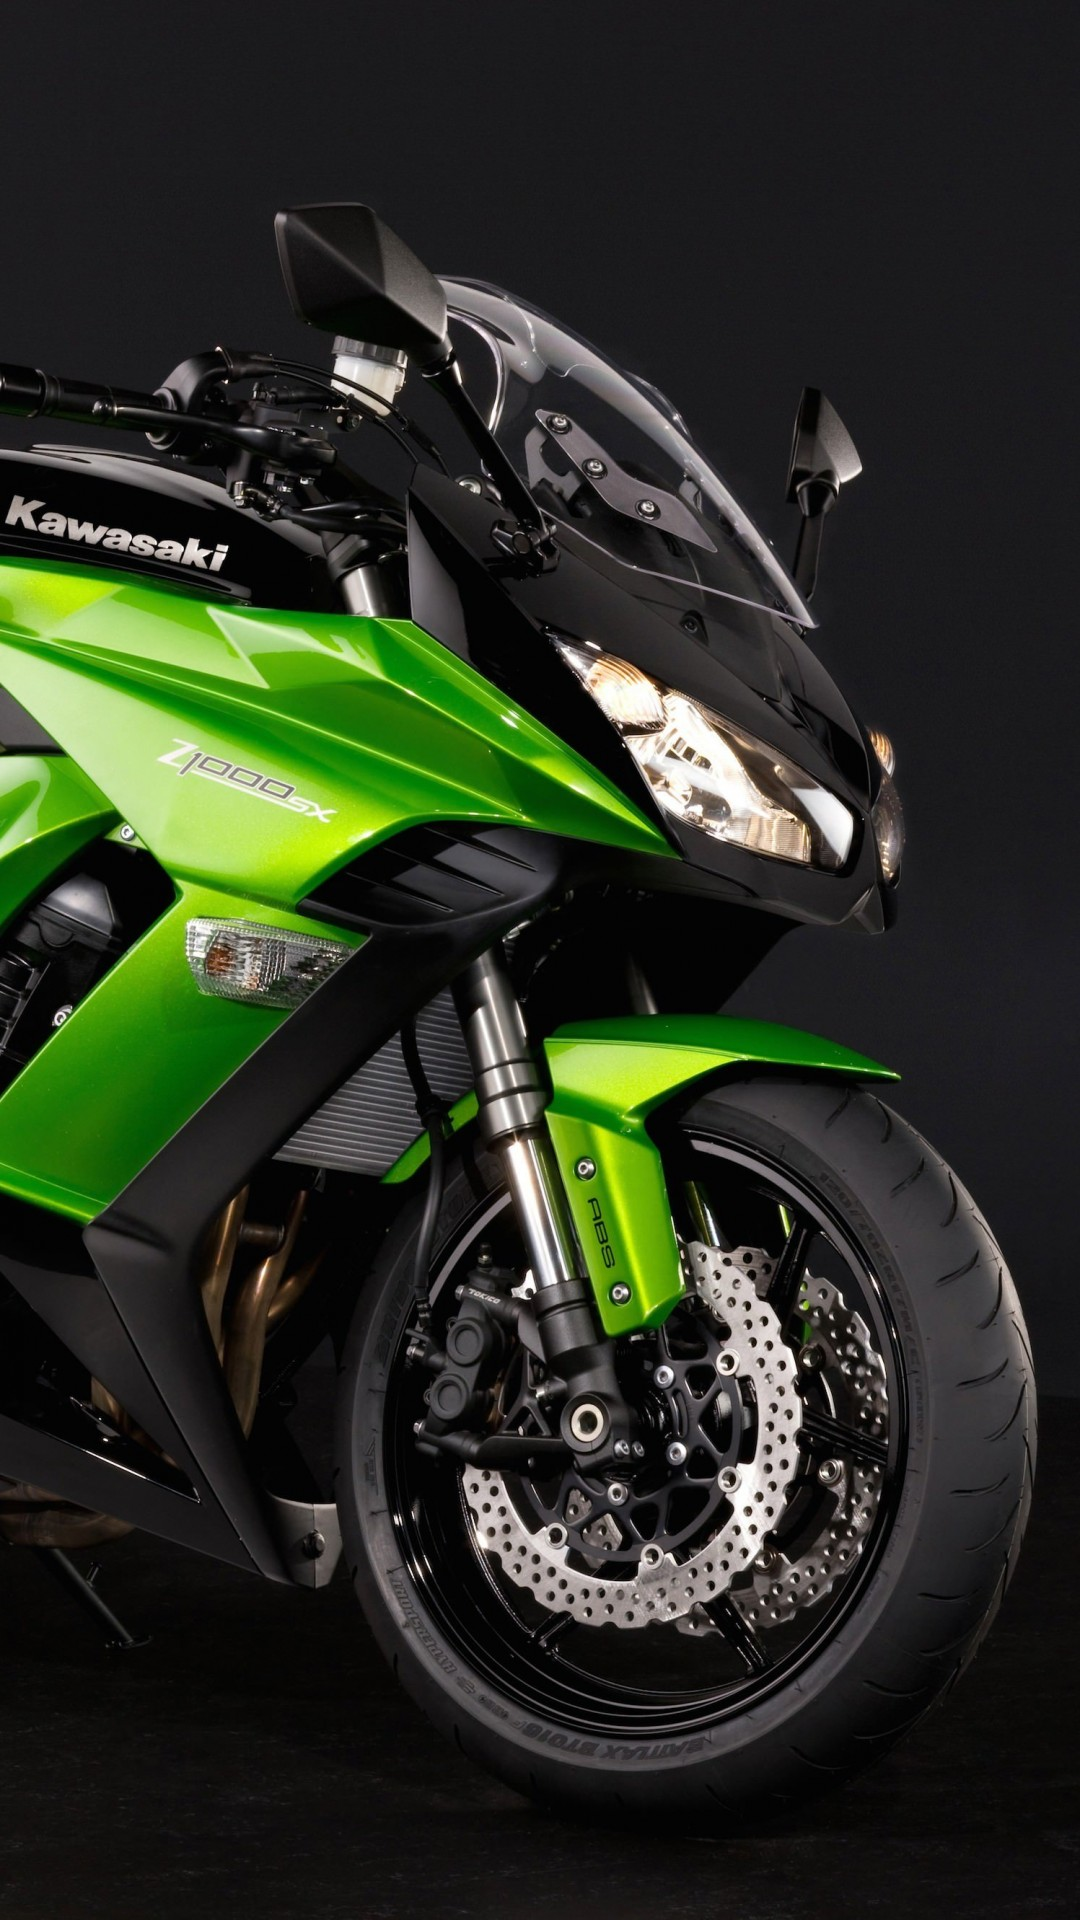 Kawasaki Kawasaki Z1000SX Wallpaper for SAMSUNG Galaxy Note 3